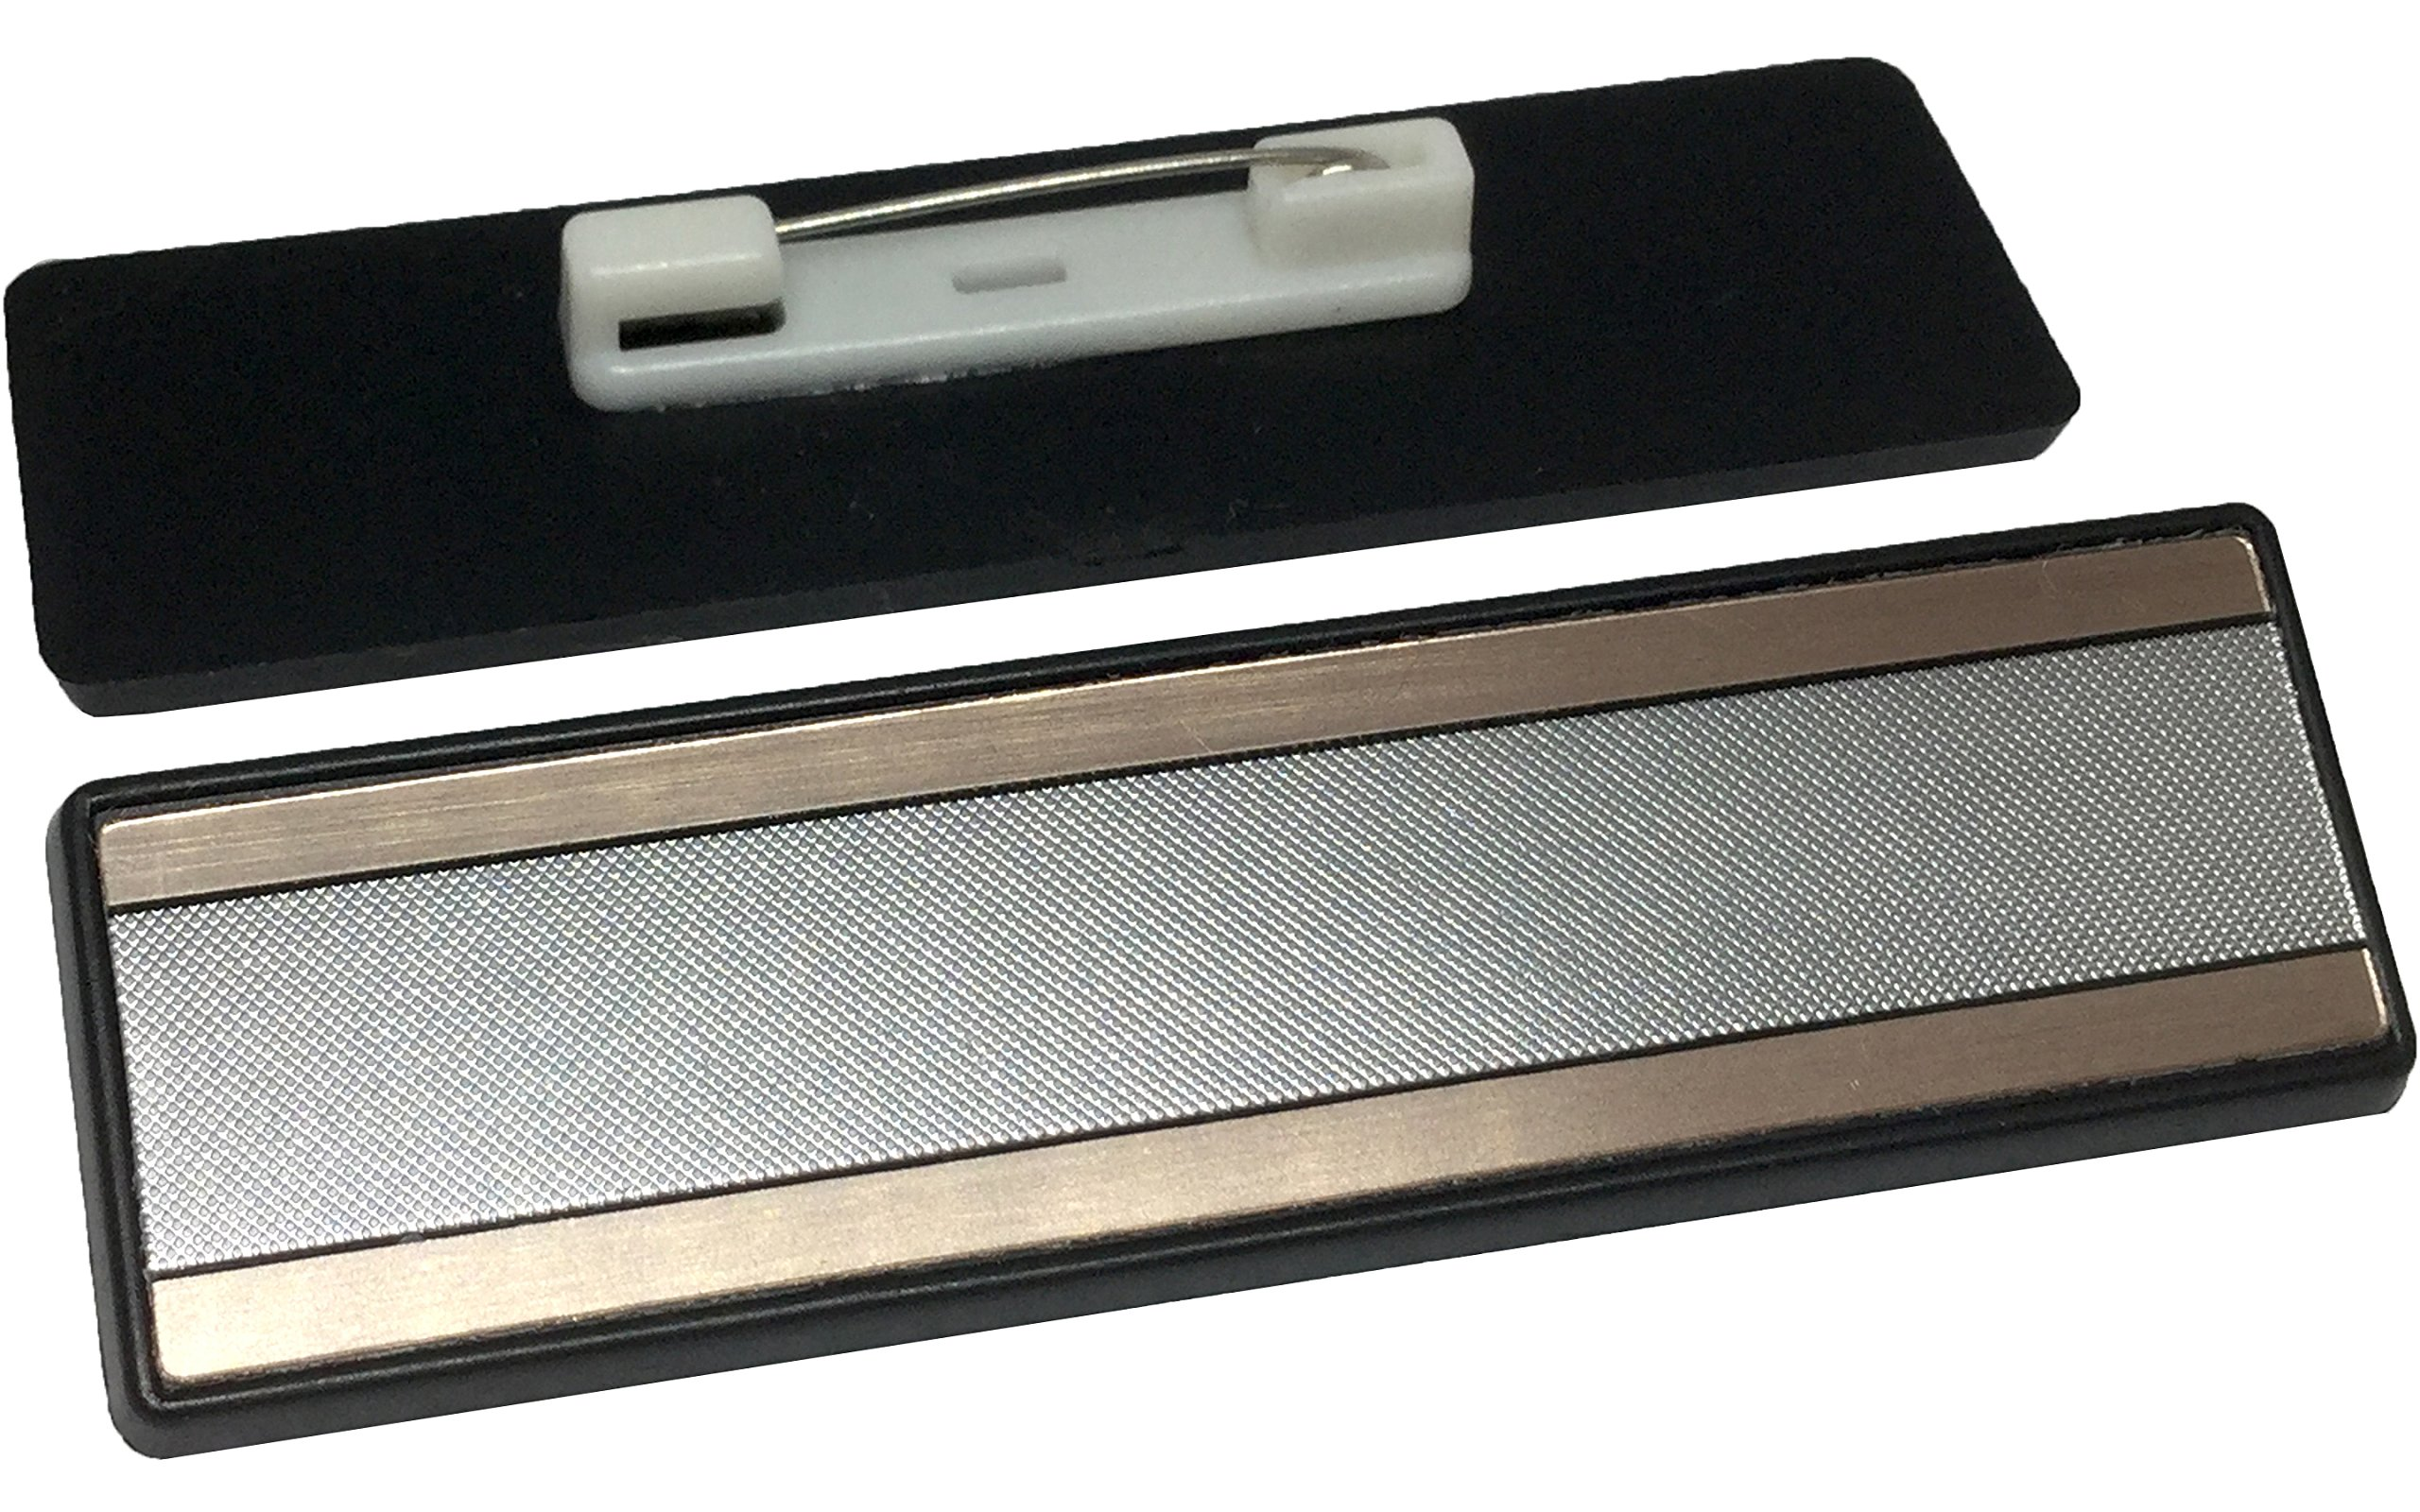 Name Tag/Badge Blanks - 25 Pack, Brushed Silver Gold Trim 1'' X 3'', Square Corners, Pin